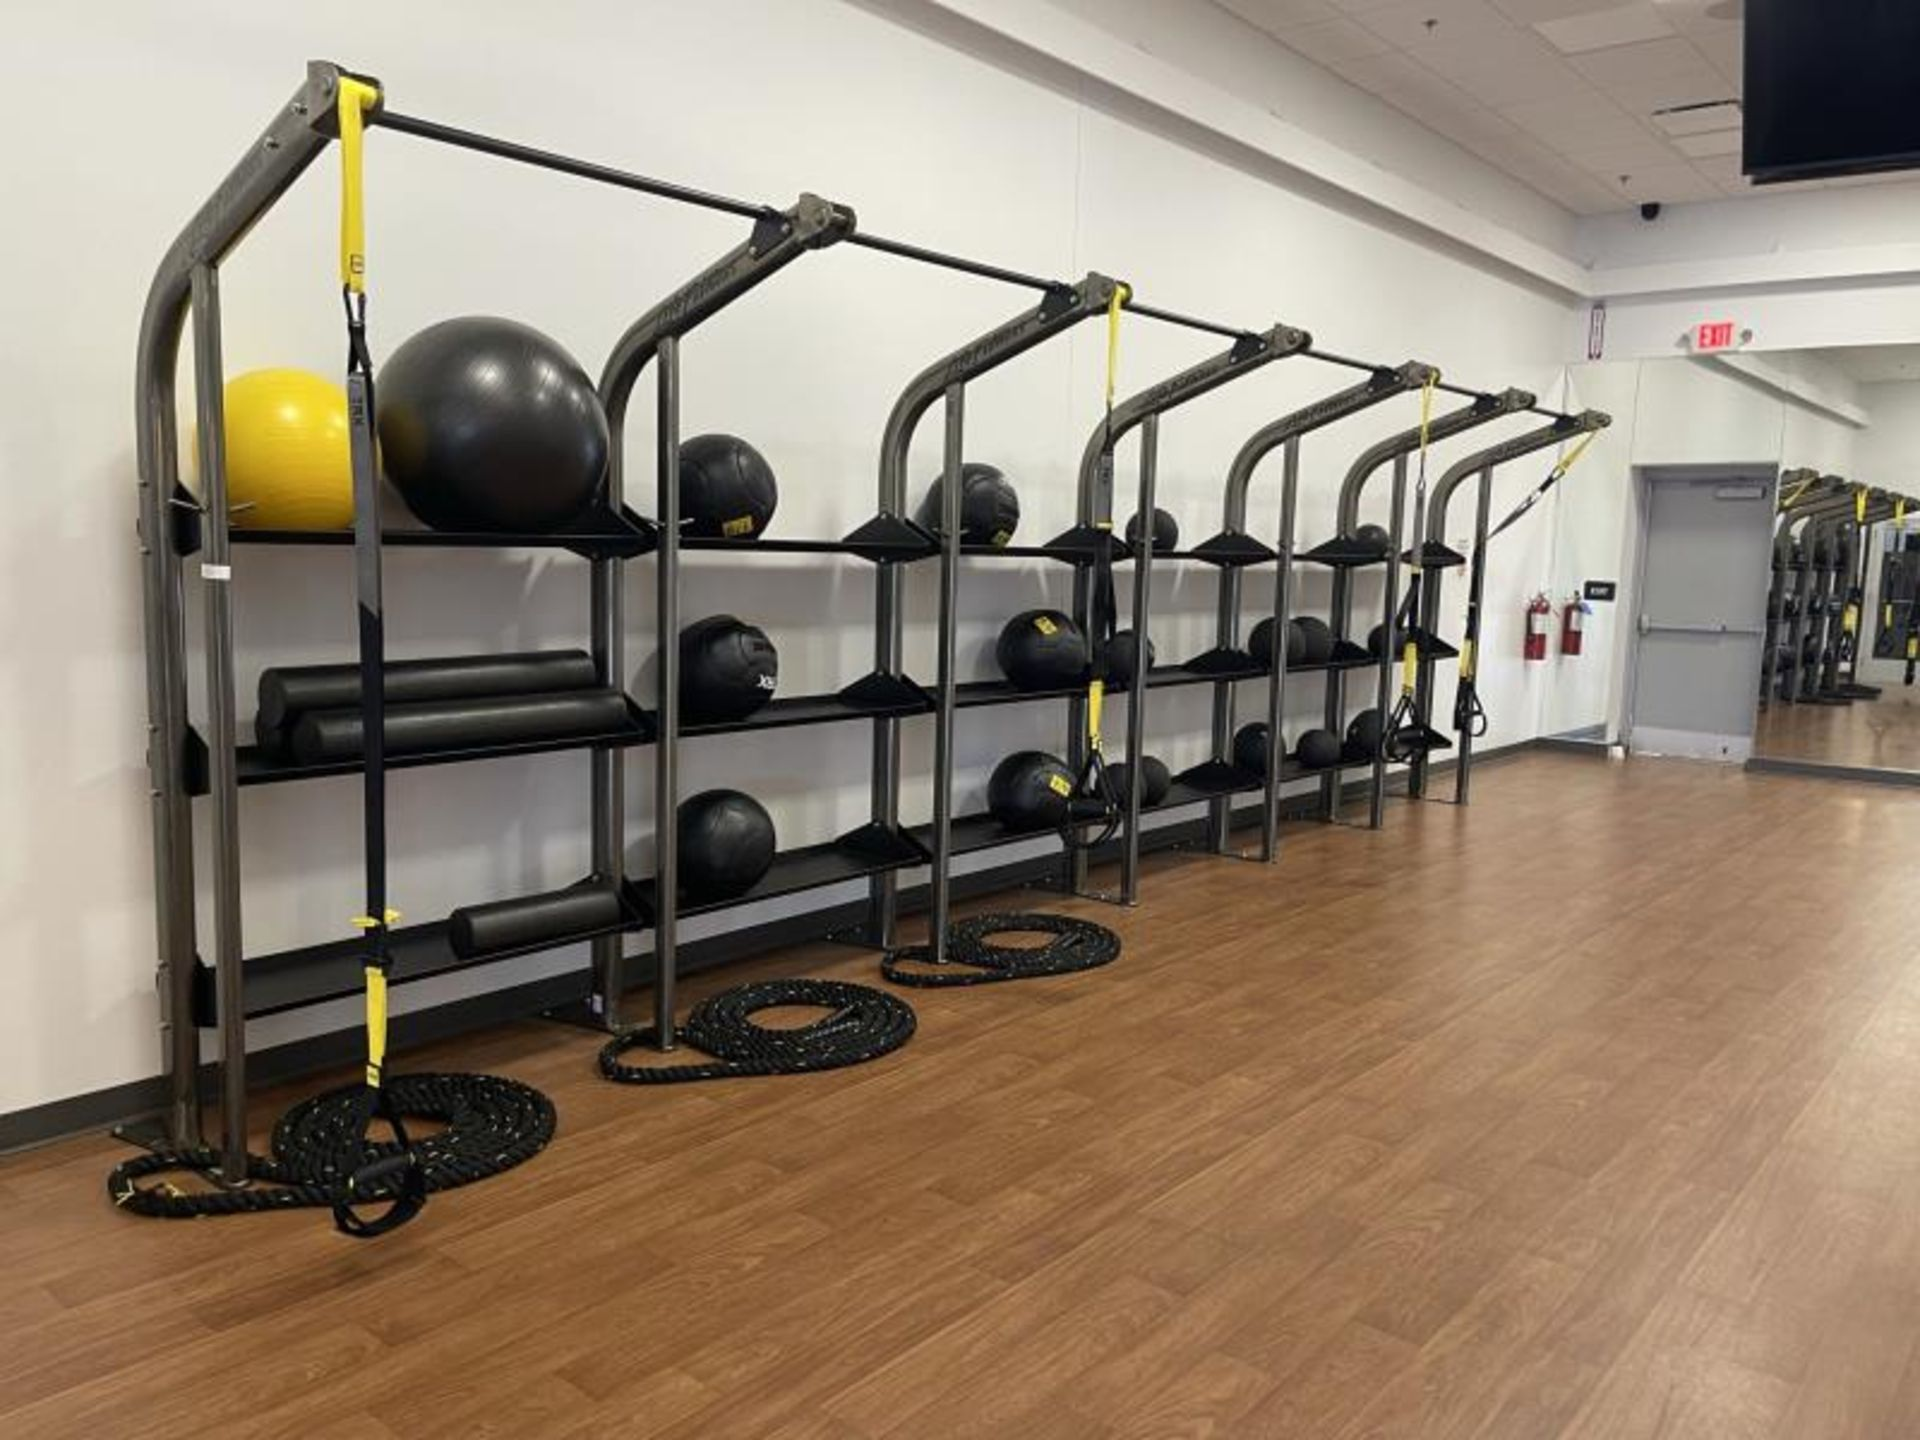 Life Fitness SYNRGY Wall Rack Training System, TRX Training System Straps, Rope, Balls